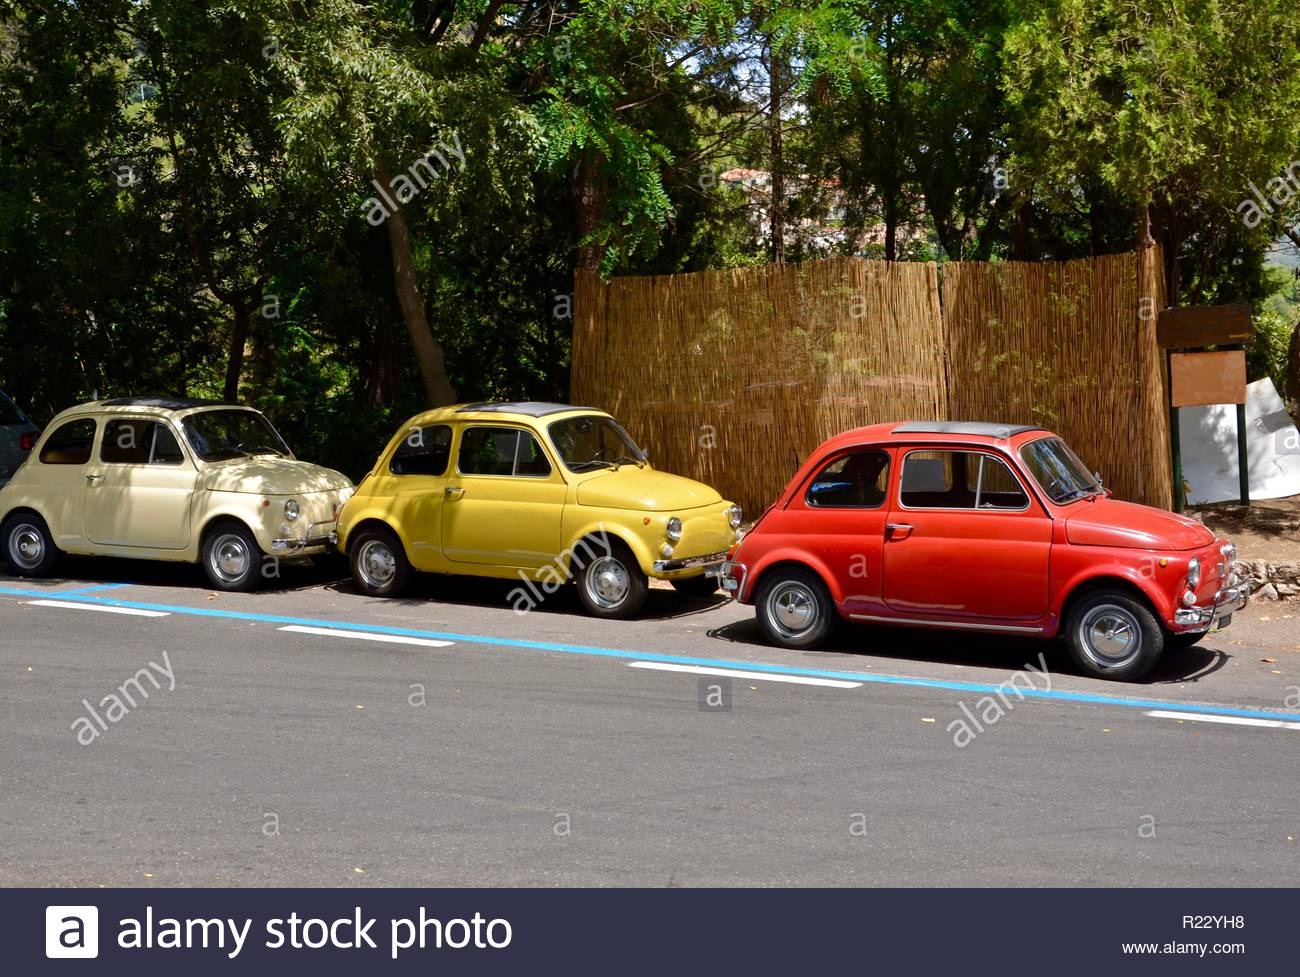 Cars Movie Stock Photos & Cars Movie Stock Images - Alamy